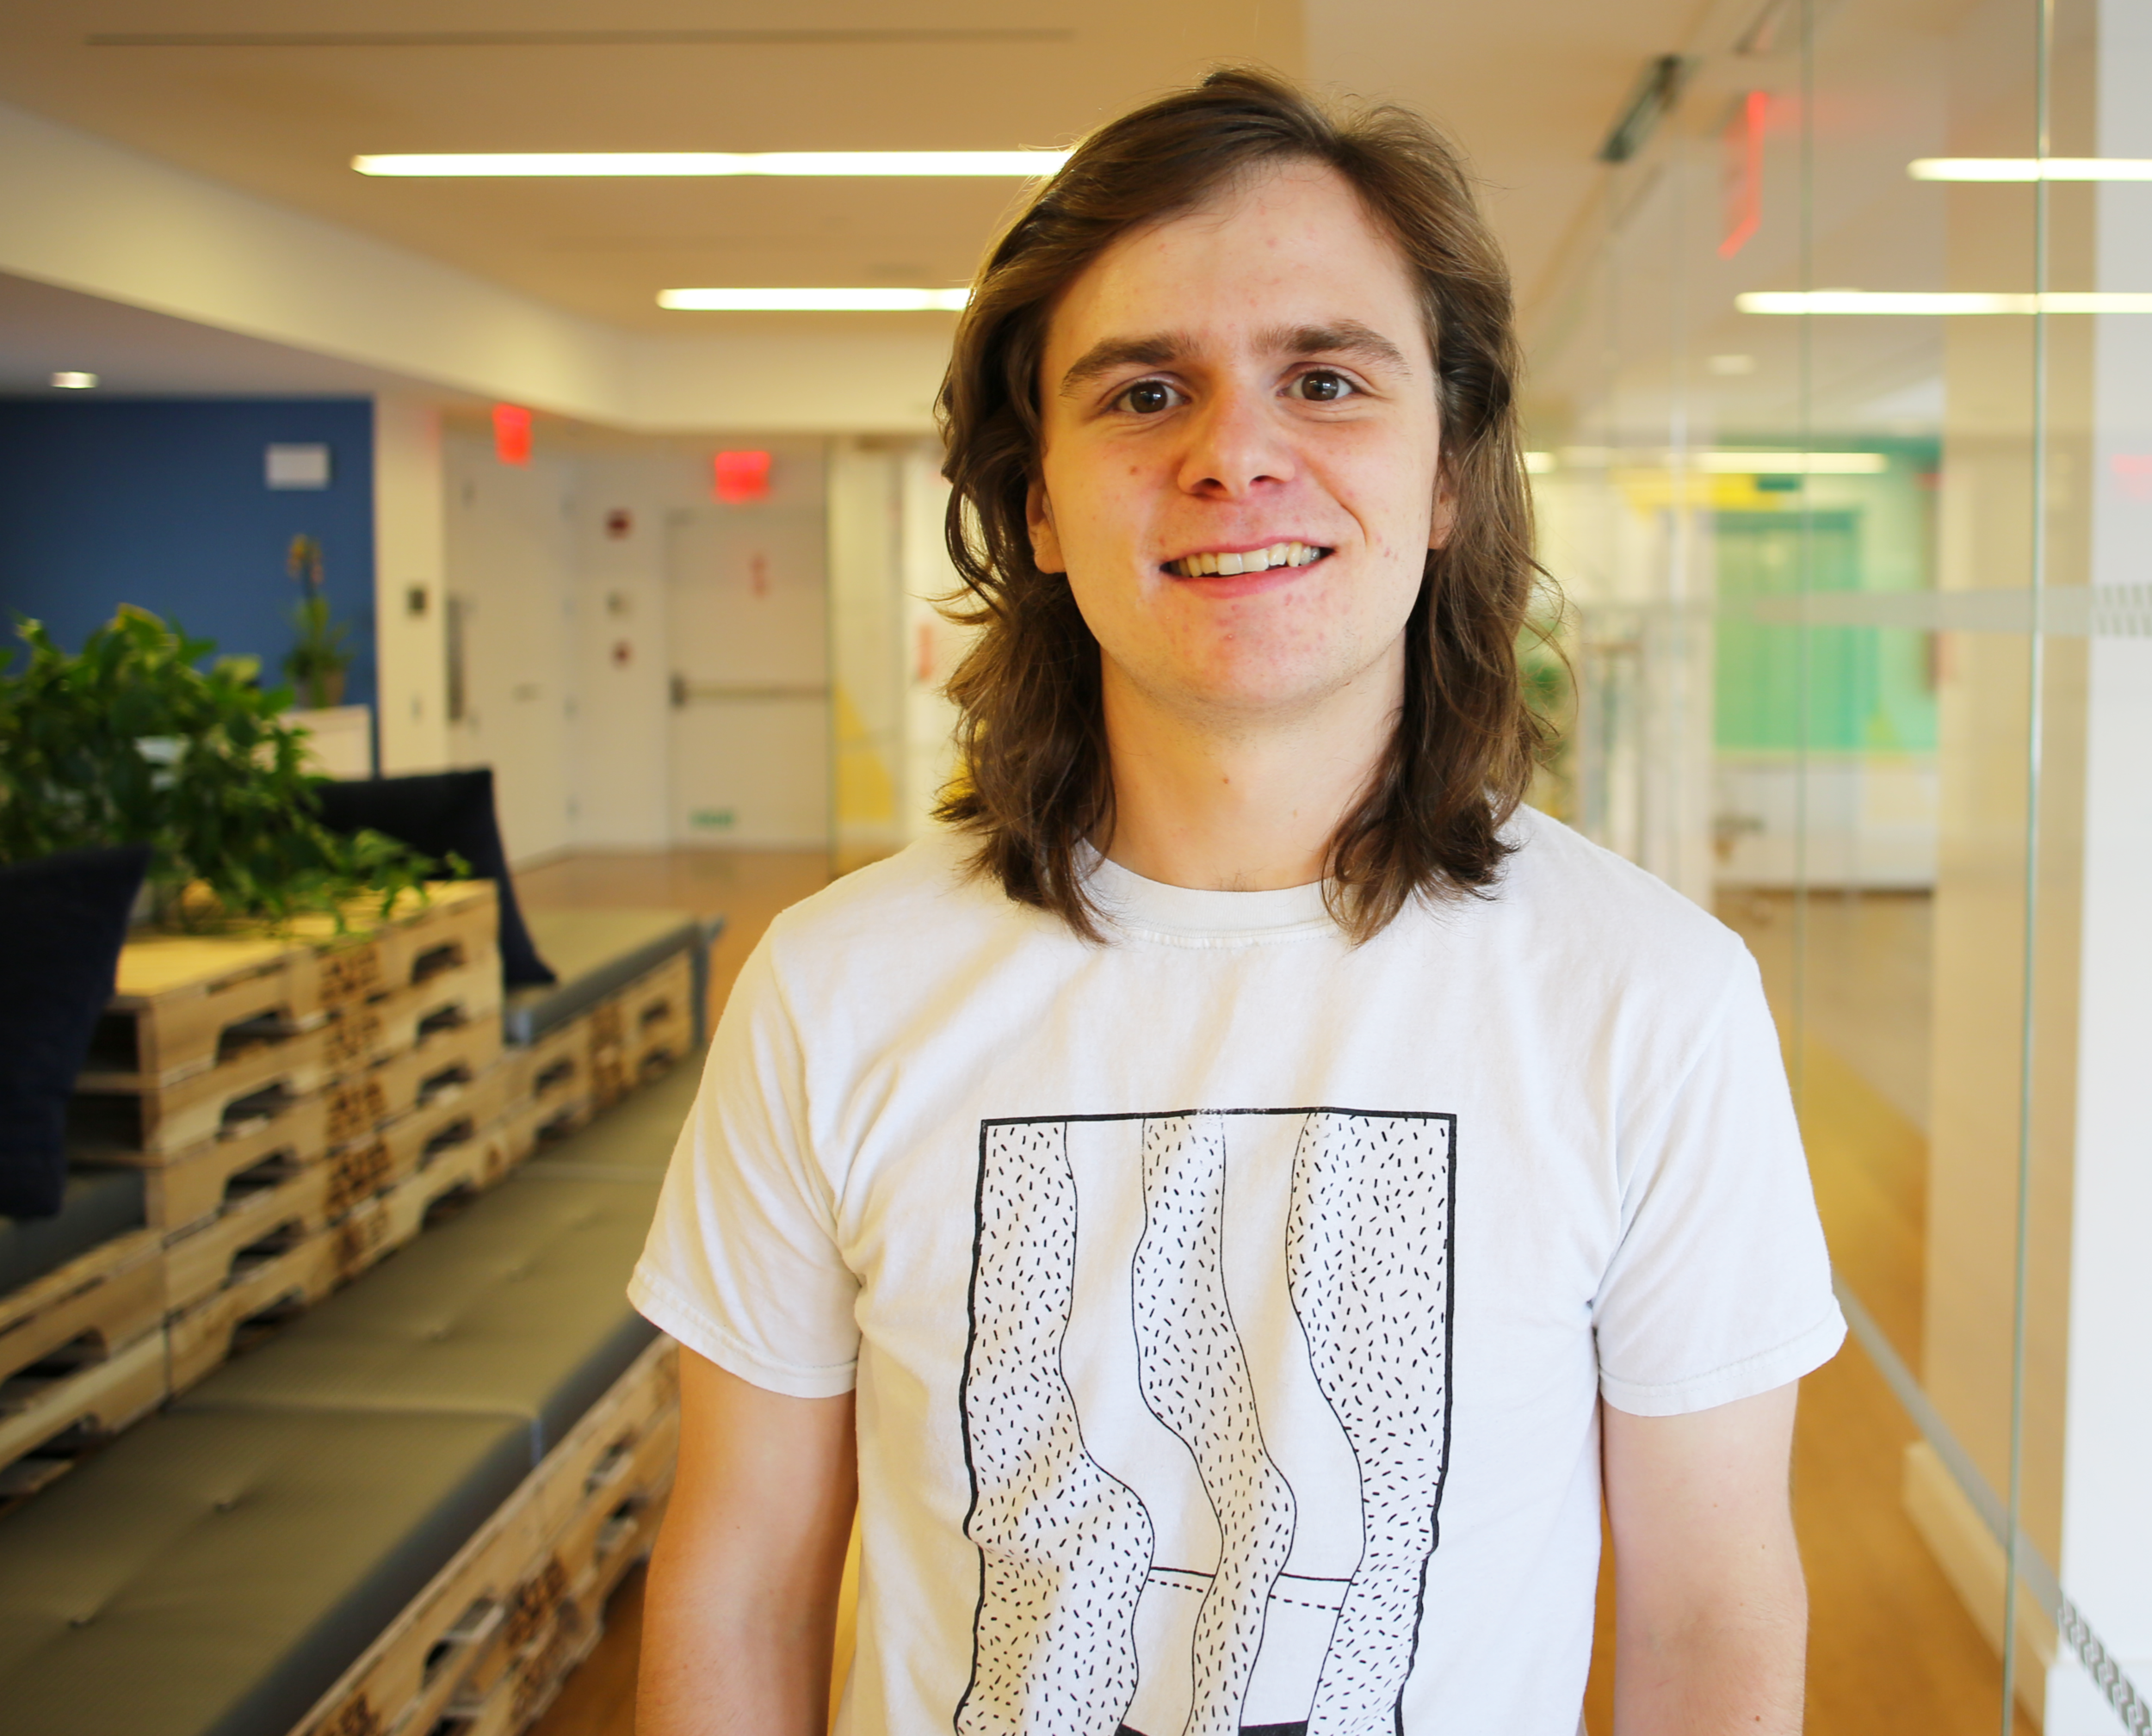 Jack Meagher is a Software Engineer for Transfix